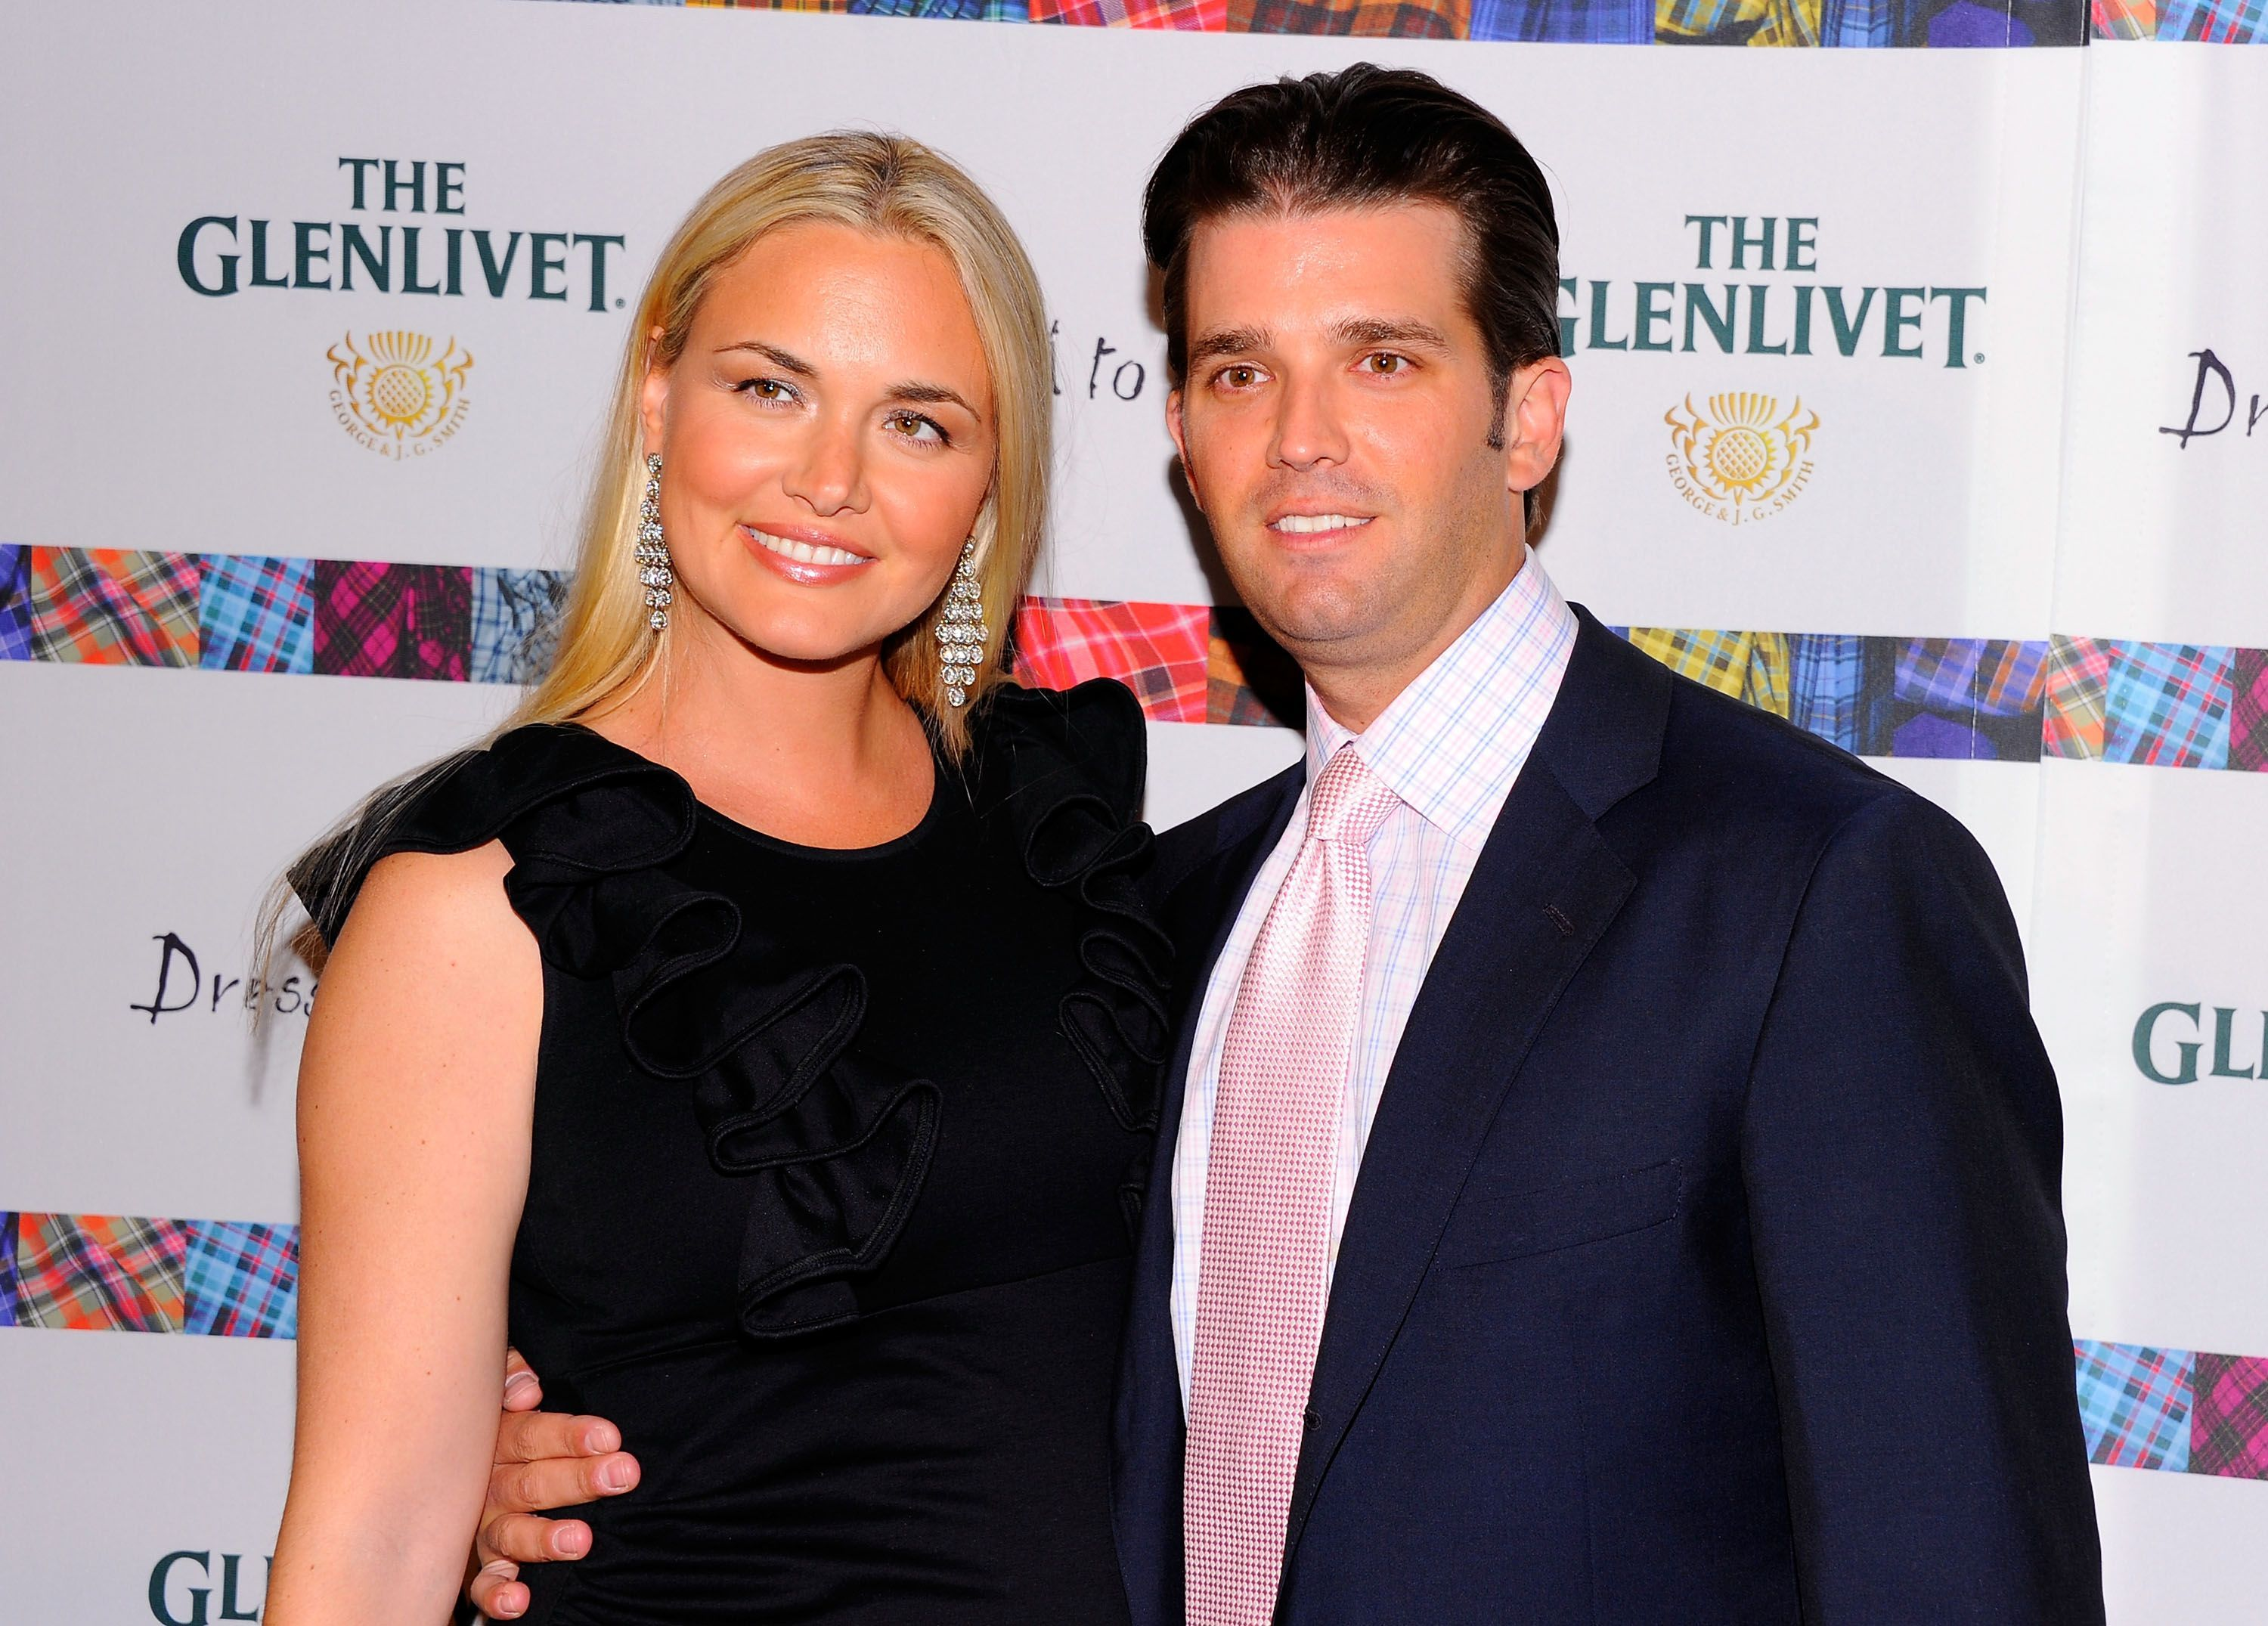 Pin On Donald J Trump And Family